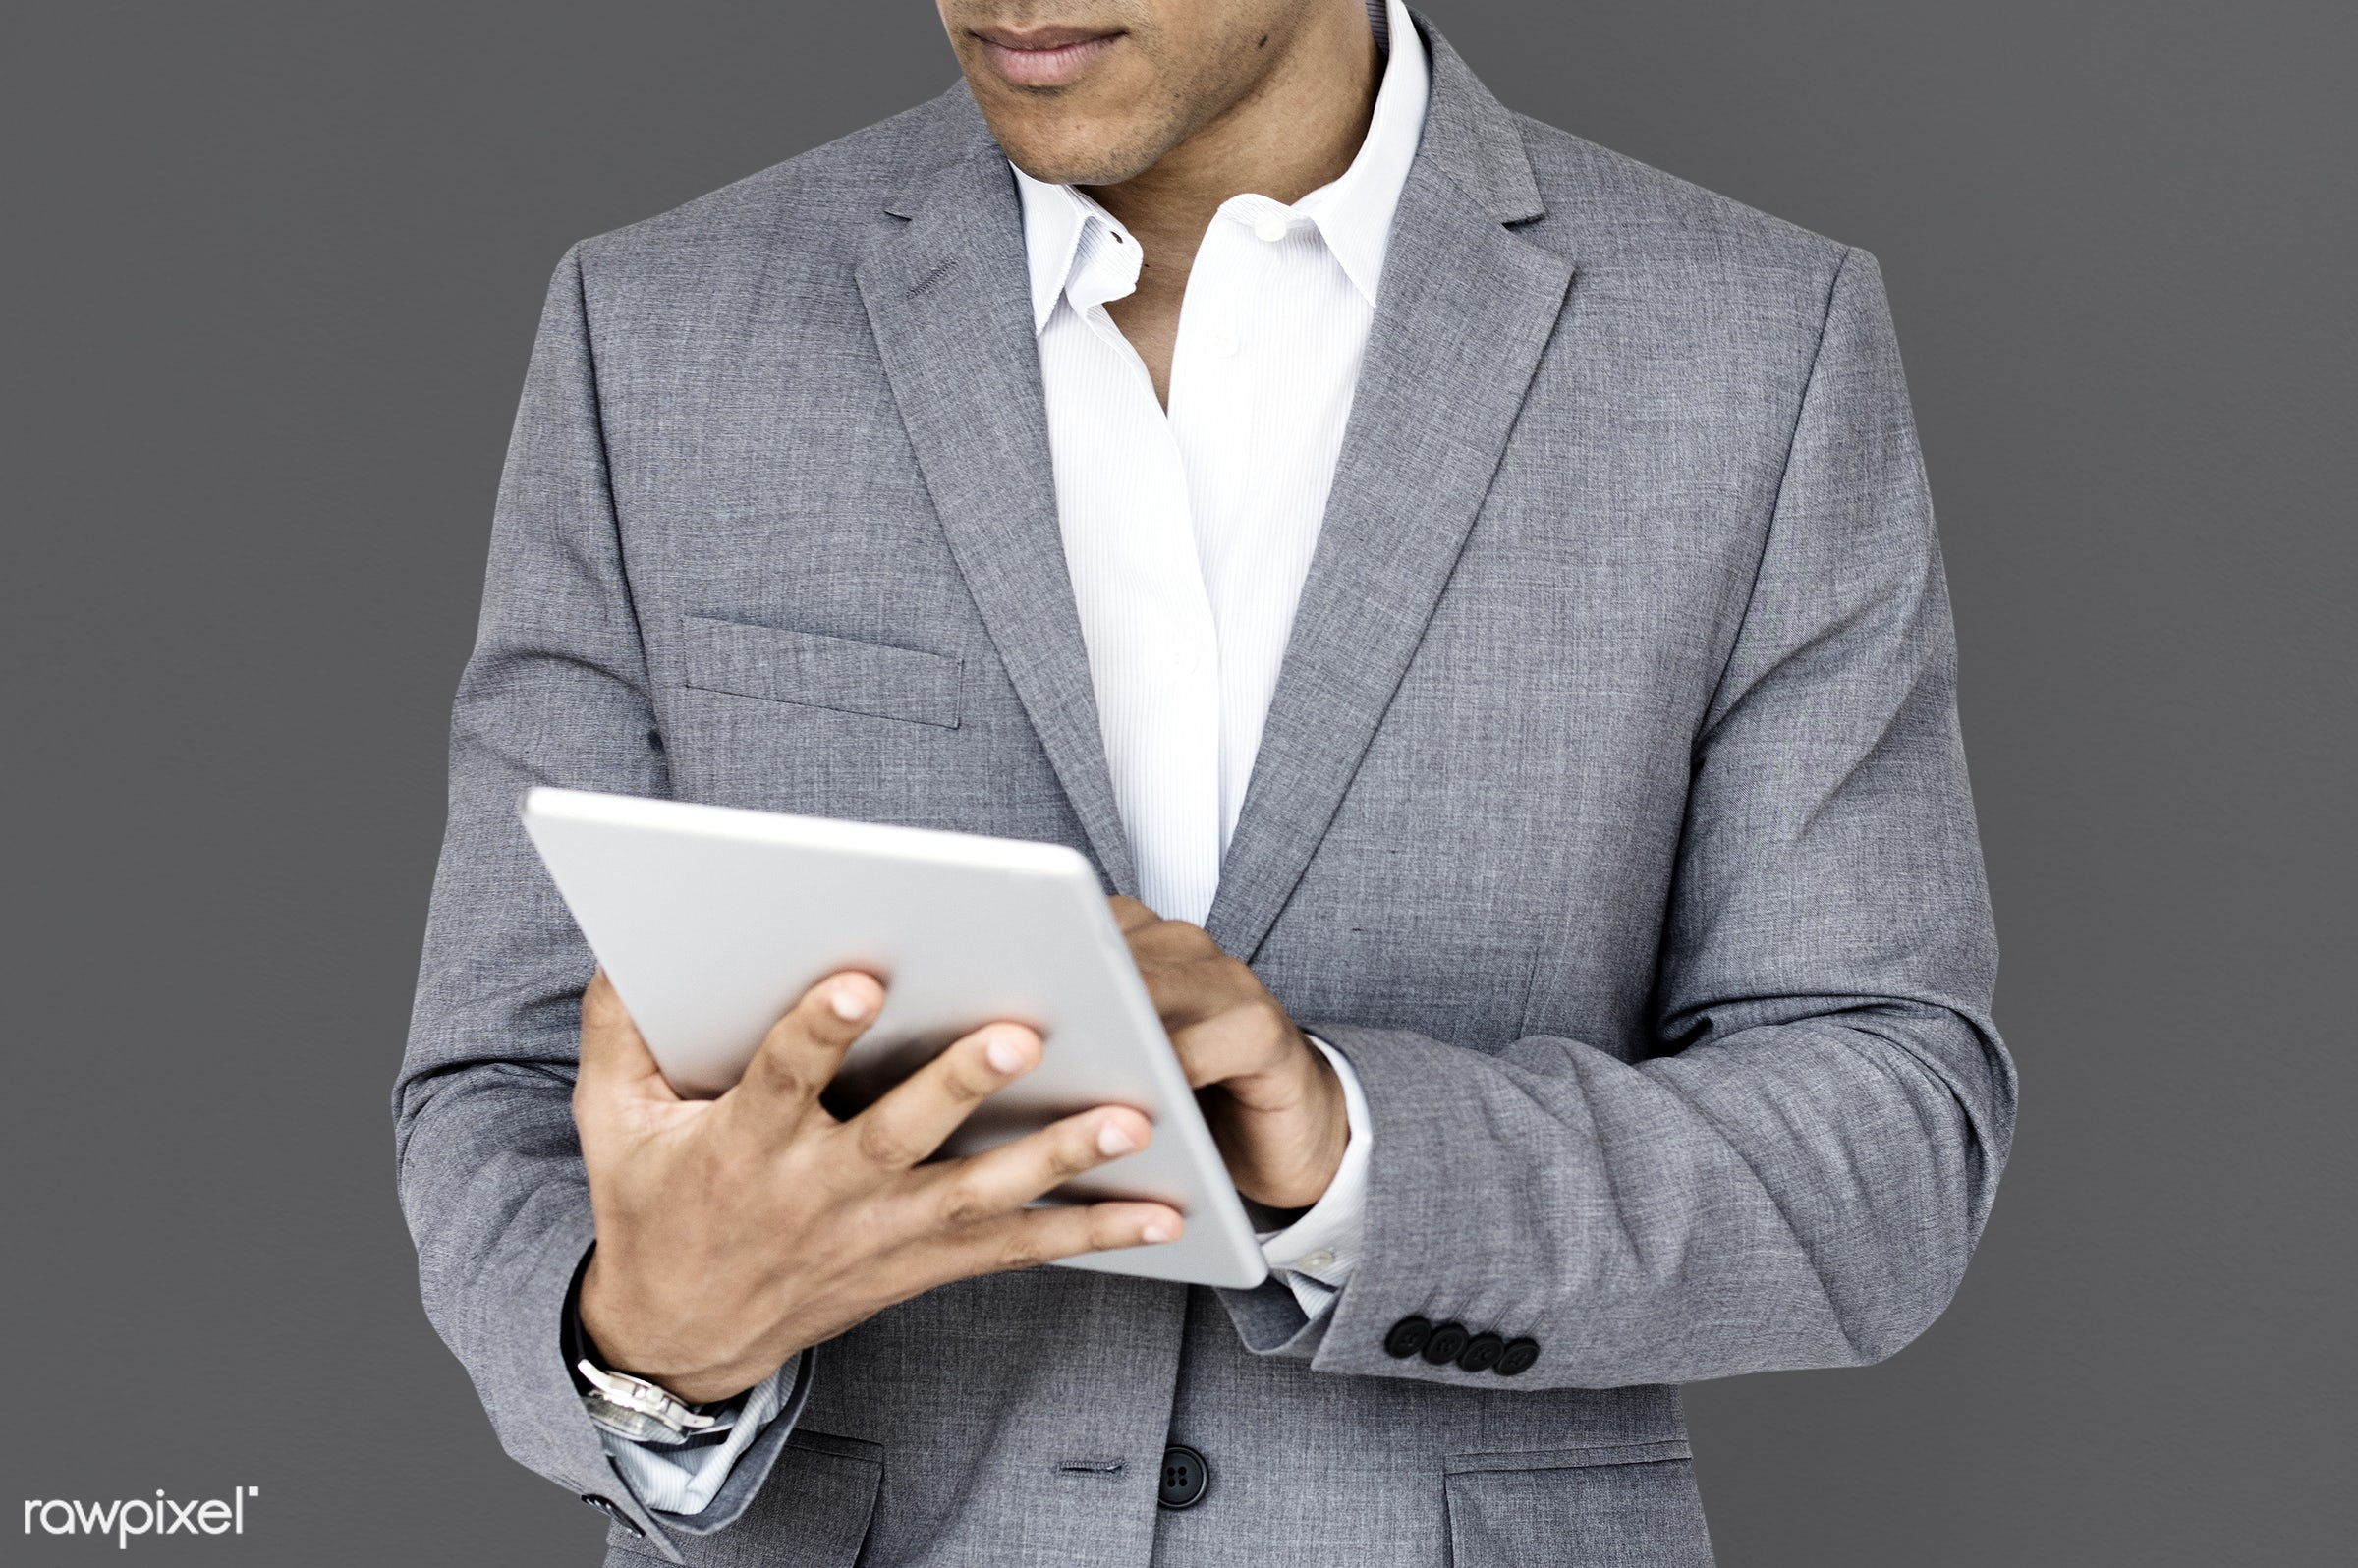 studio, expression, person, technology, business wear, concentrating, people, business, focused, working, serious, man,...